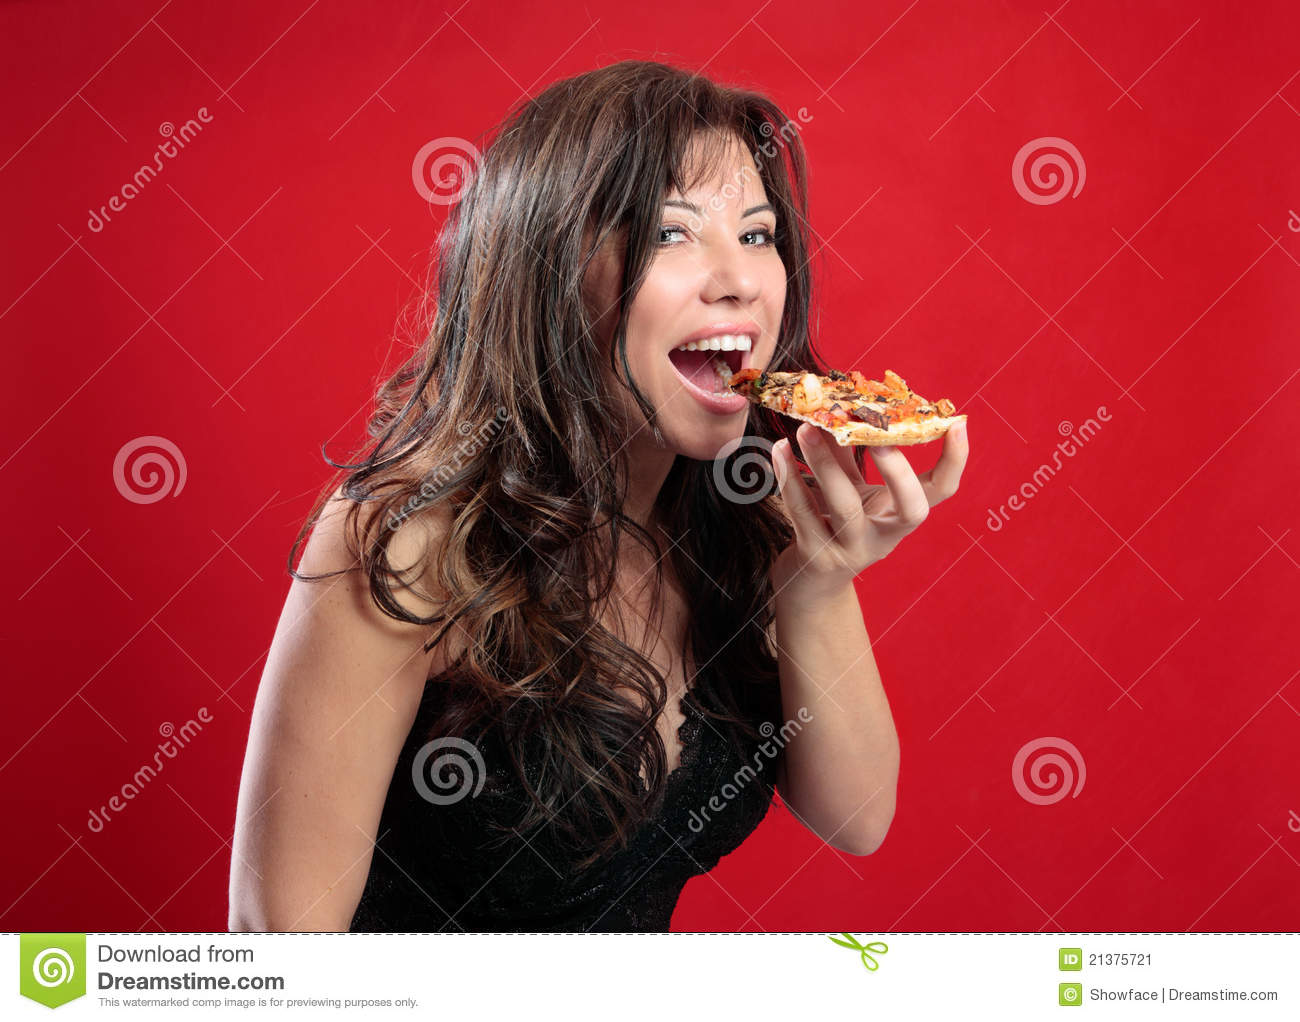 Happy woman eating pizza